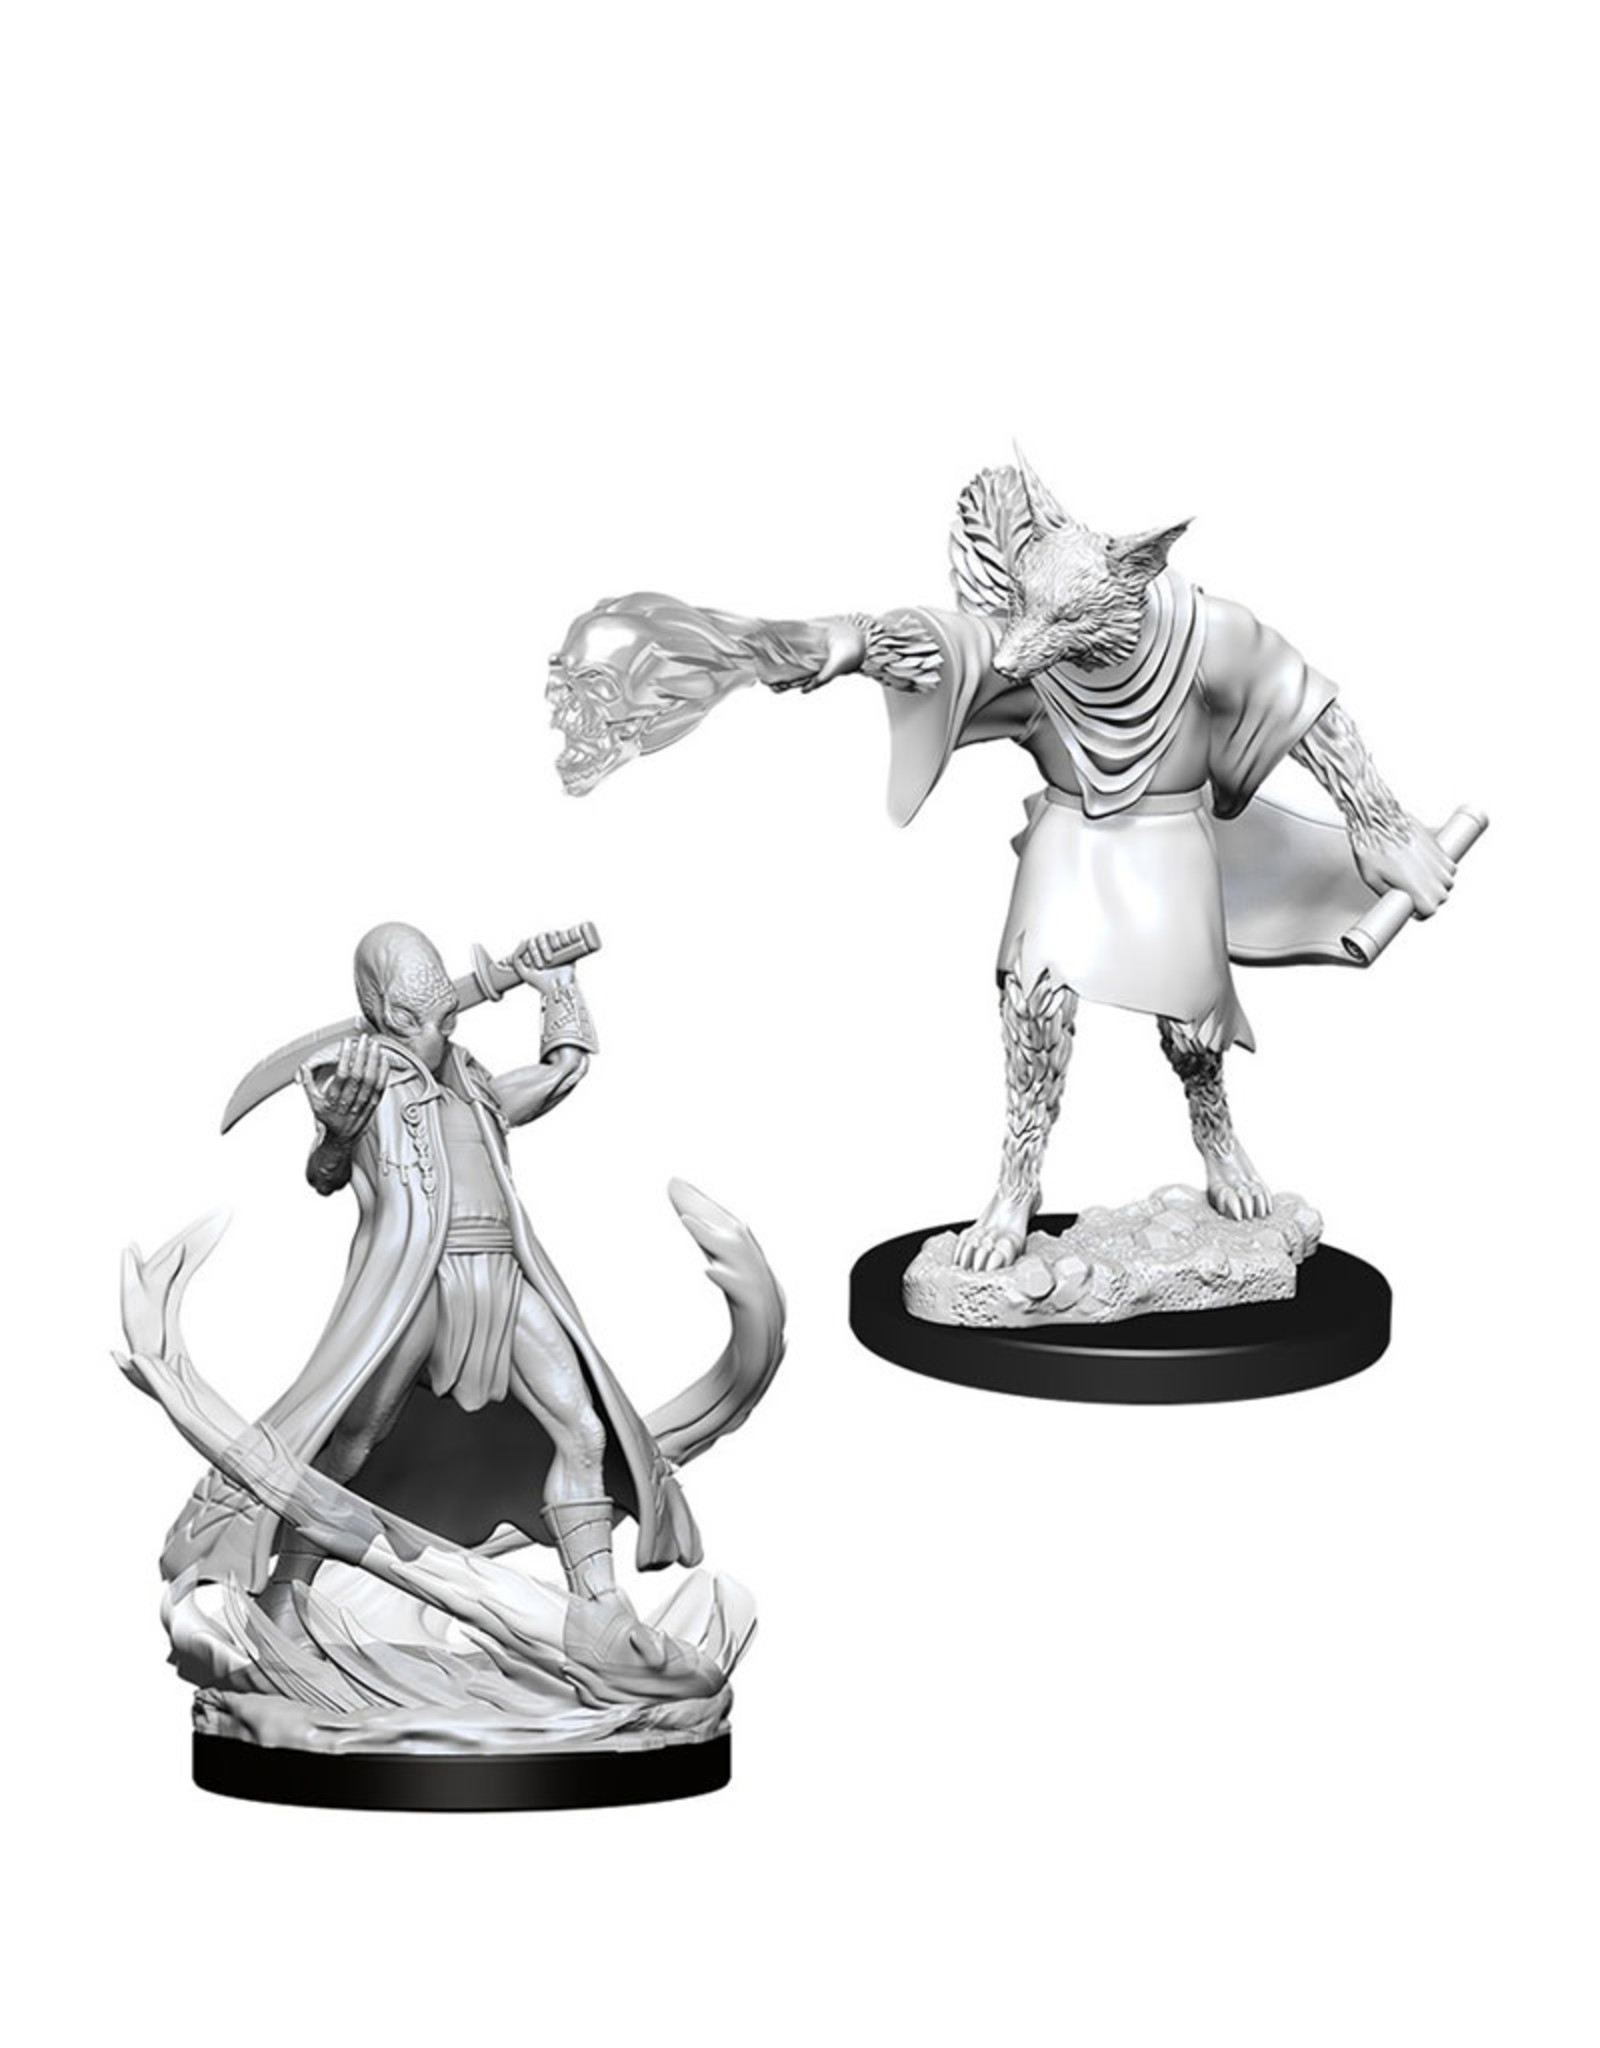 Wizkids D&D Unpainted Minis: Arcanaloth and Ultroloth